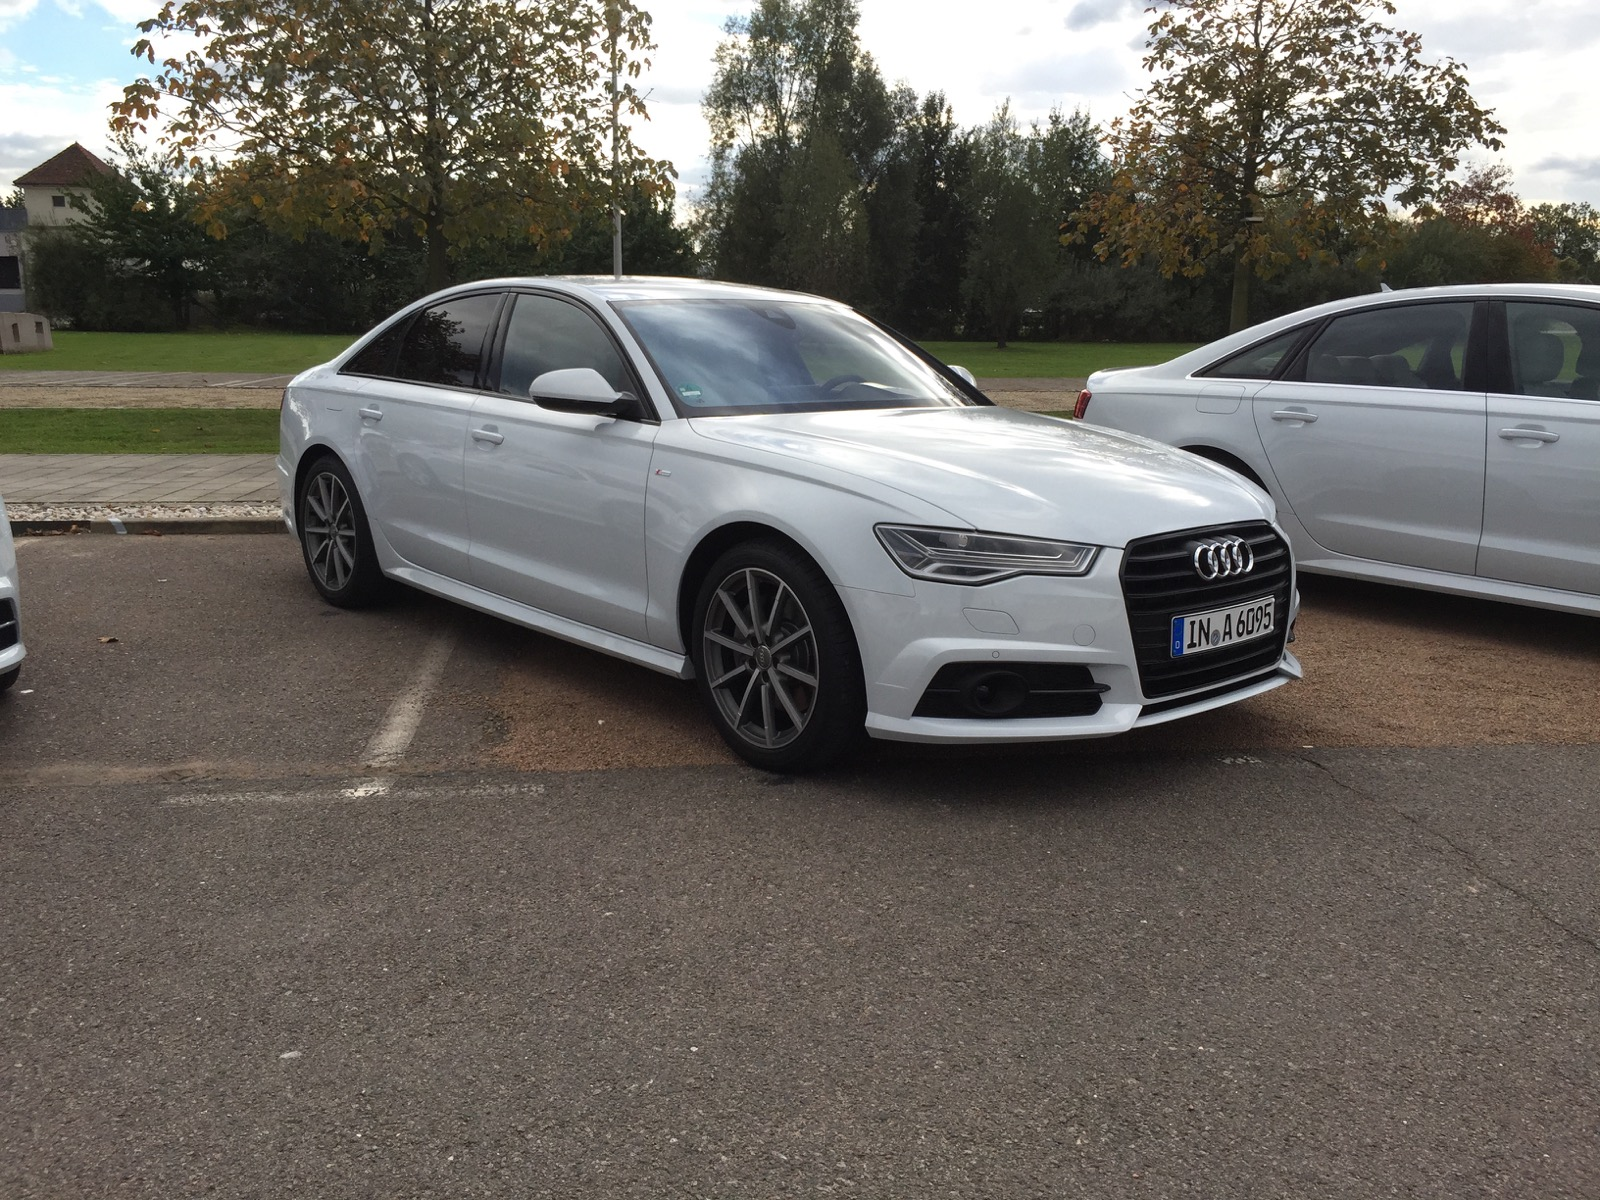 Lastest 2015 Audi A6 Review  CarAdvice